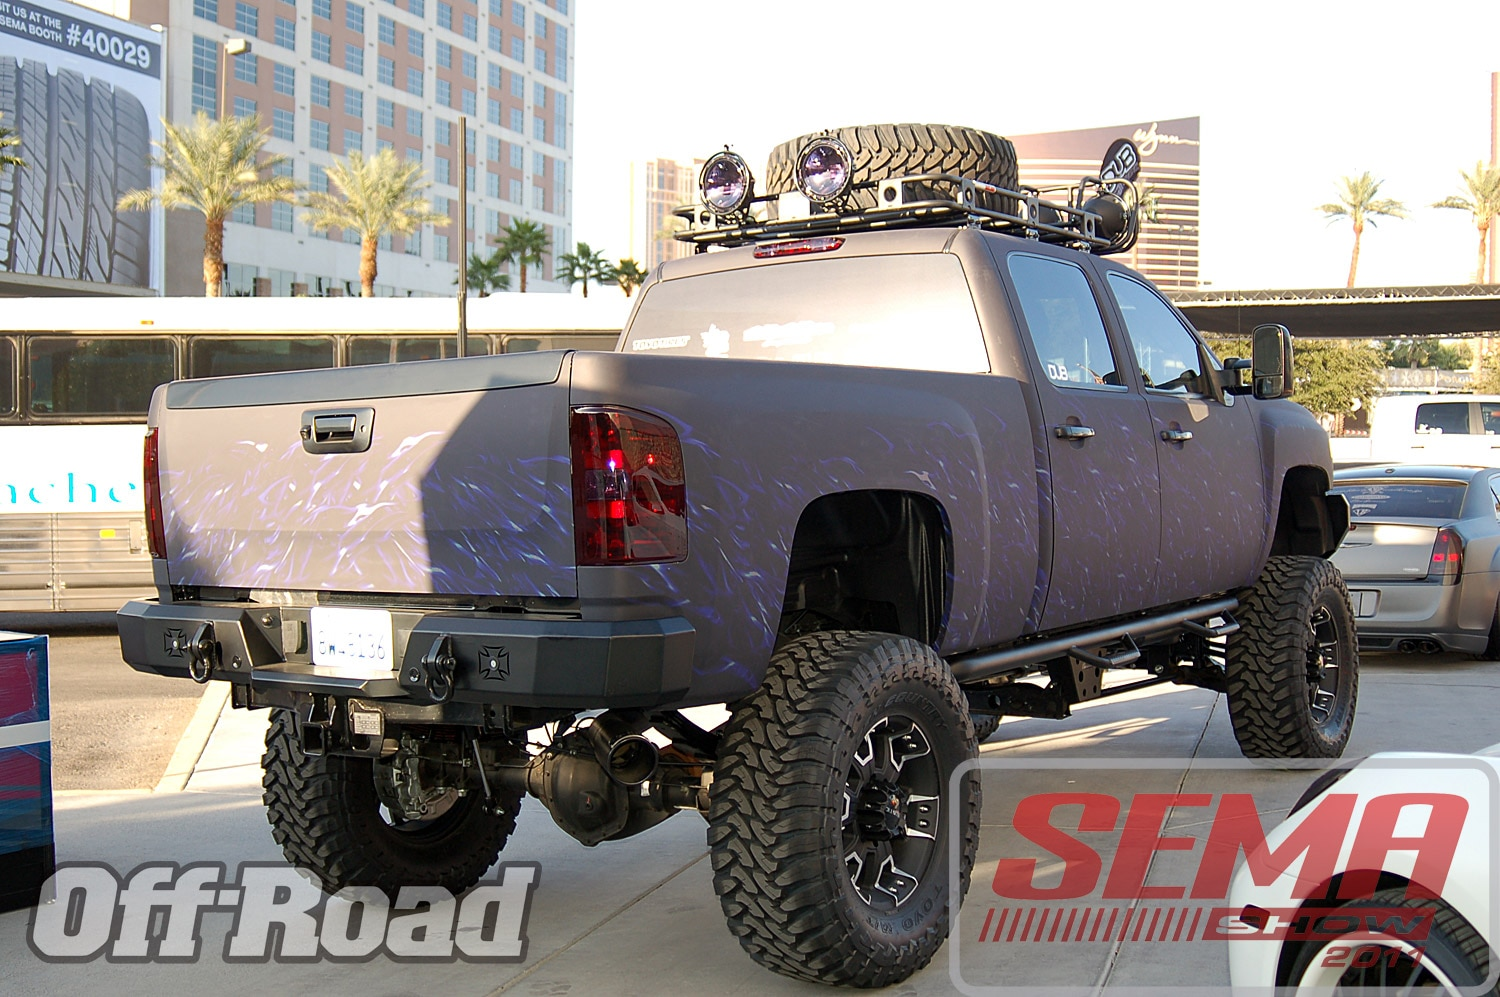 102312or 0092+2011 sema show+off road trucks and products